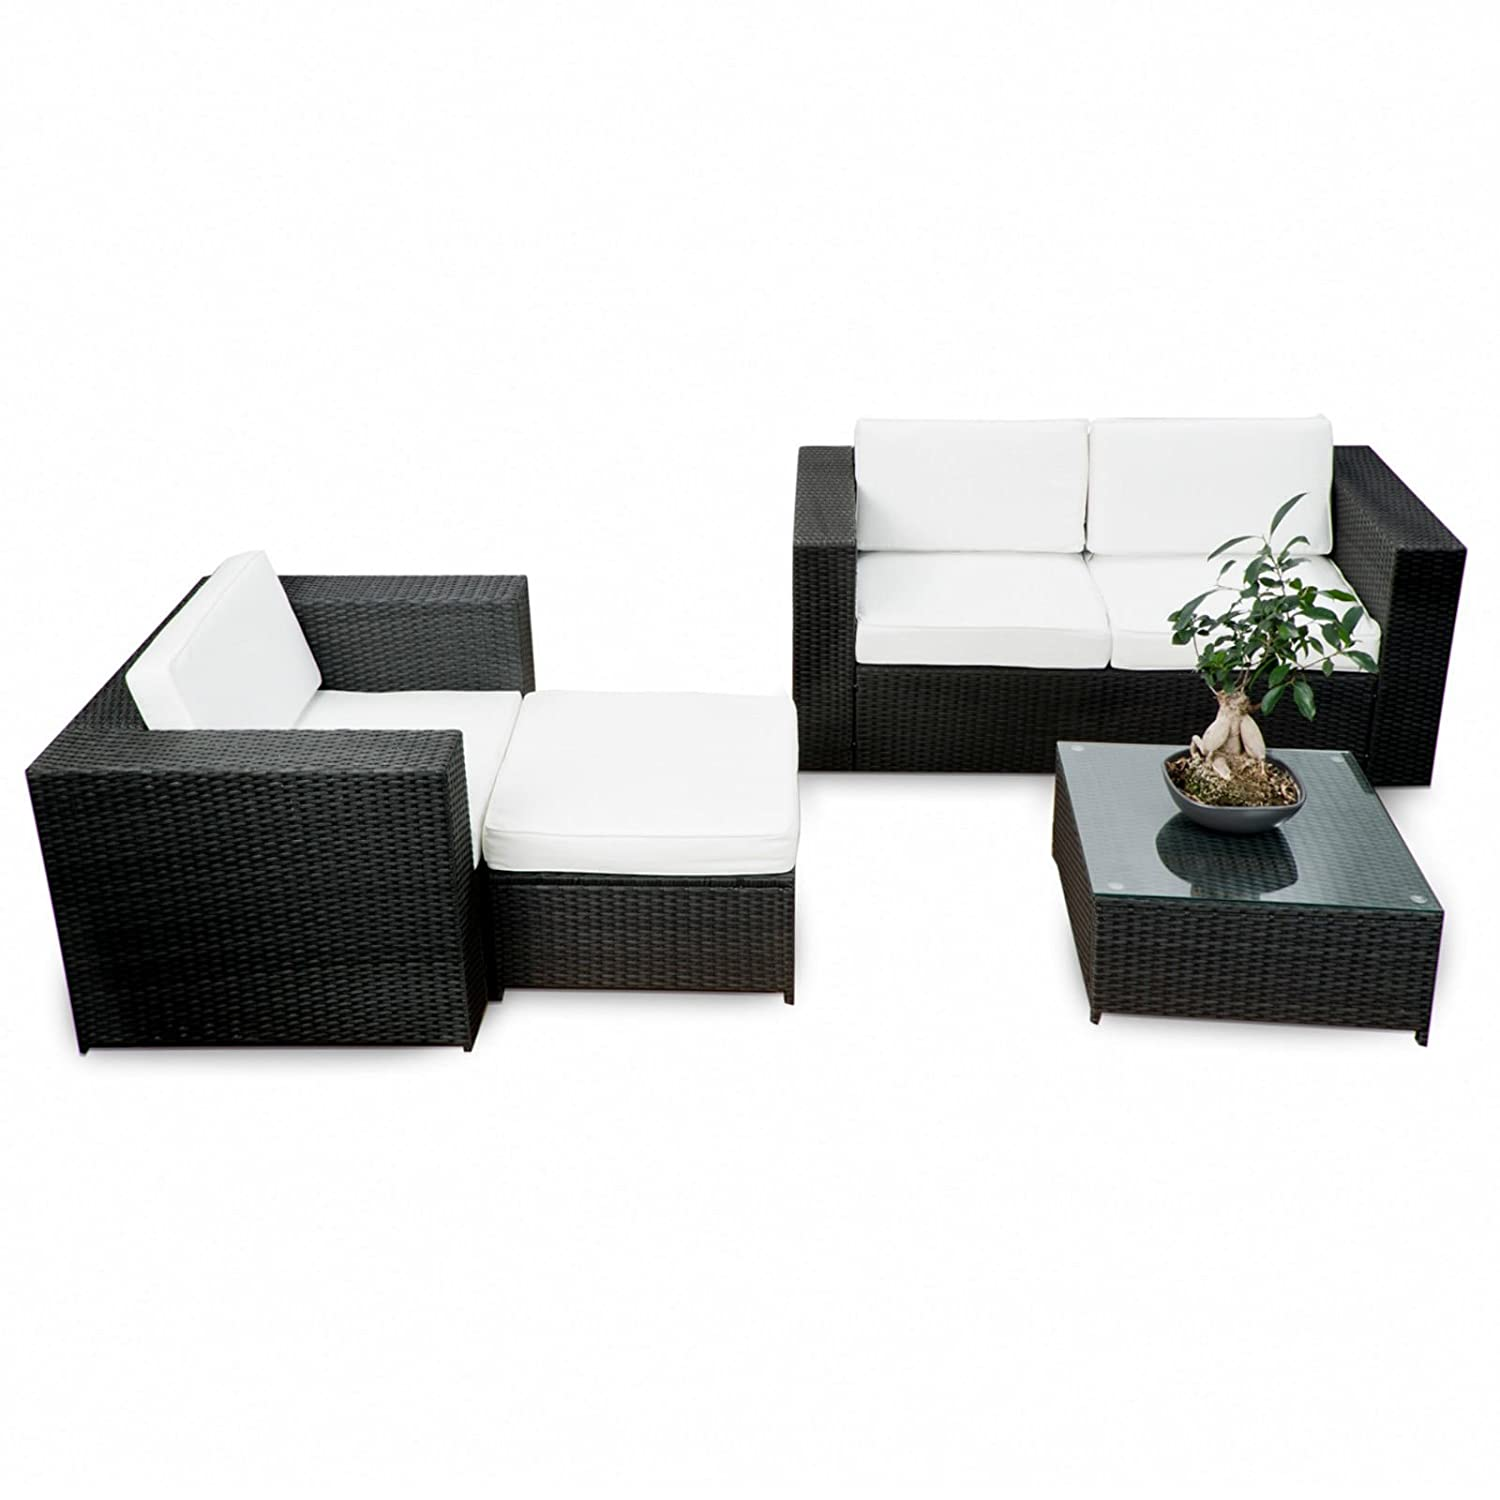 ssitg polyrattan gartenm bel lounge m bel sitzgruppe lounge hocker tisch sessel sofa g nstig. Black Bedroom Furniture Sets. Home Design Ideas